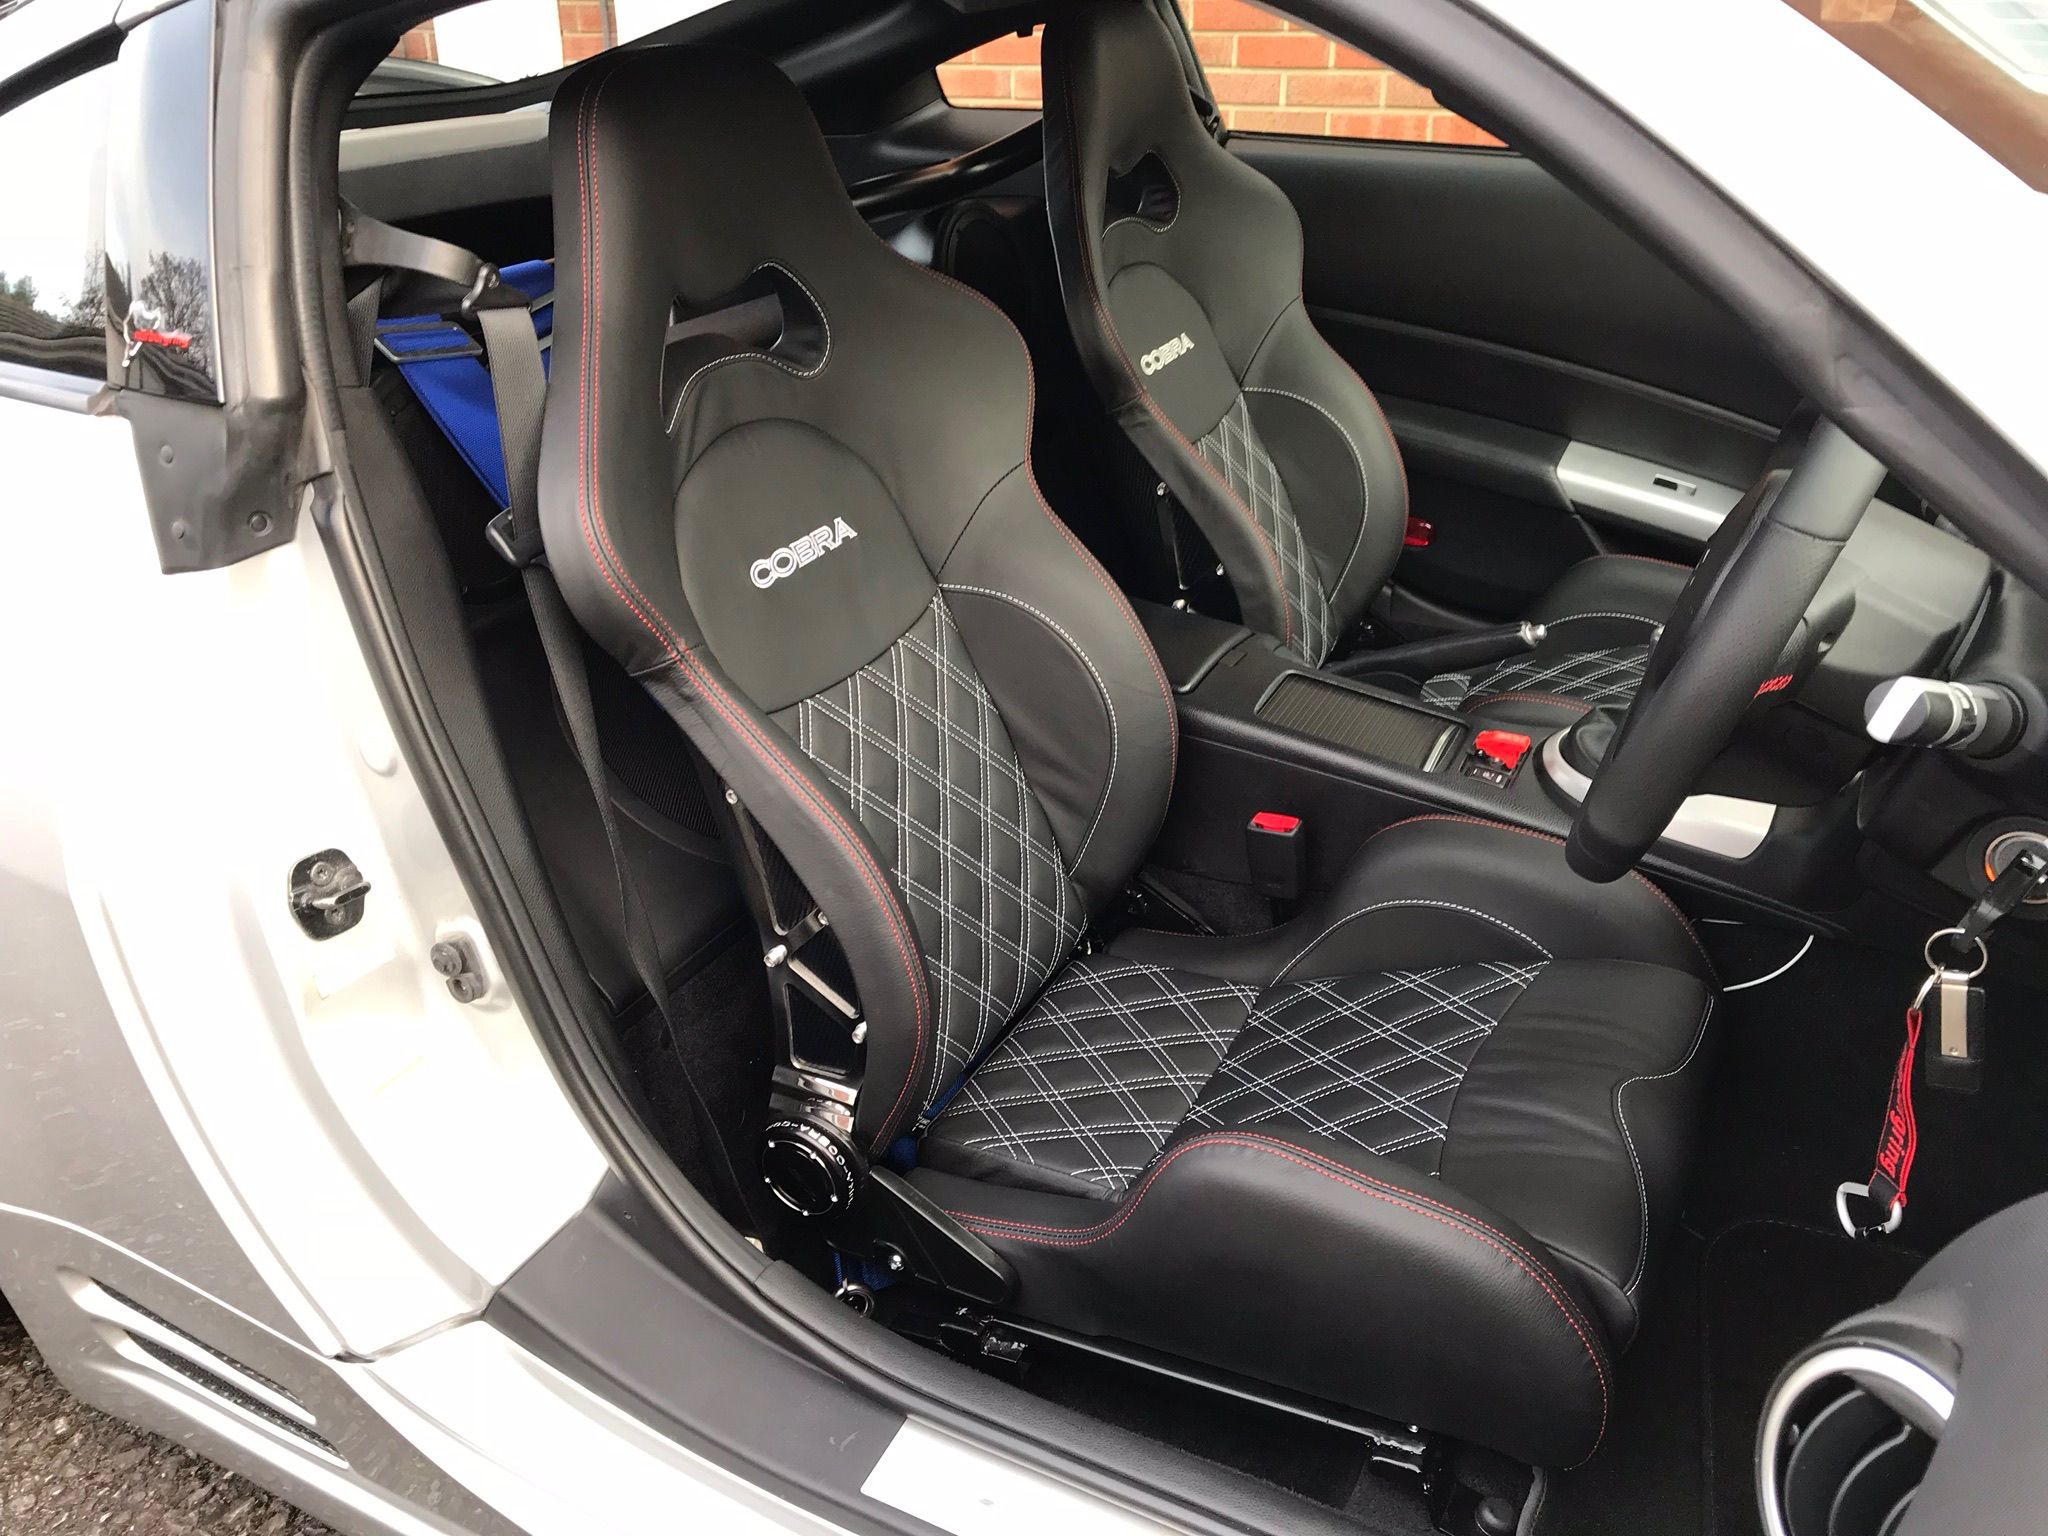 470c07e3a11 Our customer certainly was by fitting these stunning Cobra Misano  Anniversary seats with red stitching and diamond quilting. We love this  setup.